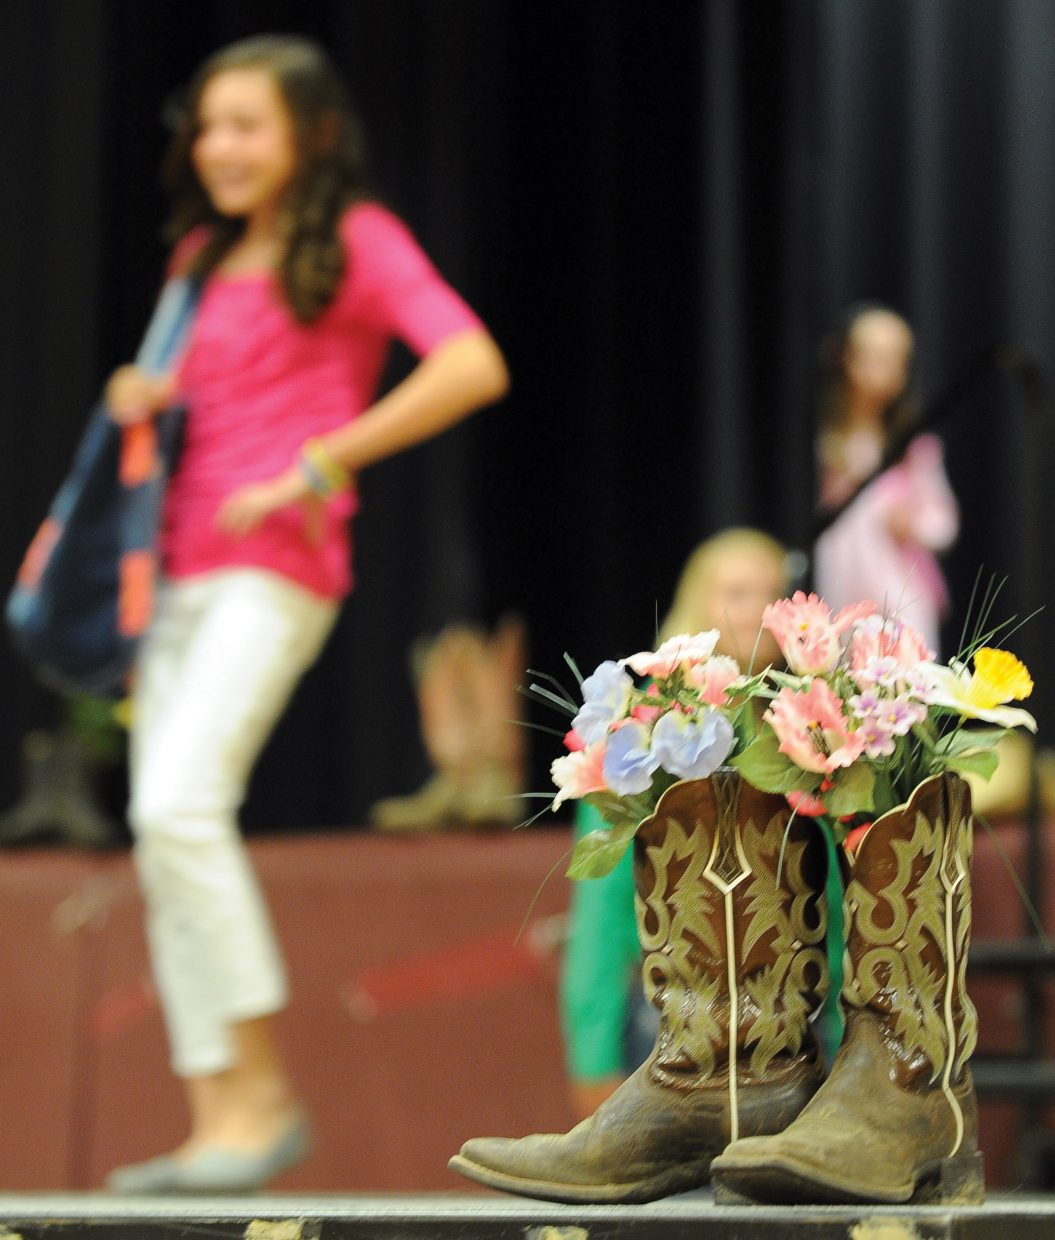 Rachel Koly models behind a pair of boots on a temporary runway set up inside the Soroco High School gym Friday night for the Routt County 4-H Fashion Revue. The revue was part o the Exhibit Day and Fashion Revue put on by the Routt County 4-H. The members had their projects judged and then were able to show them off as part of the revue.